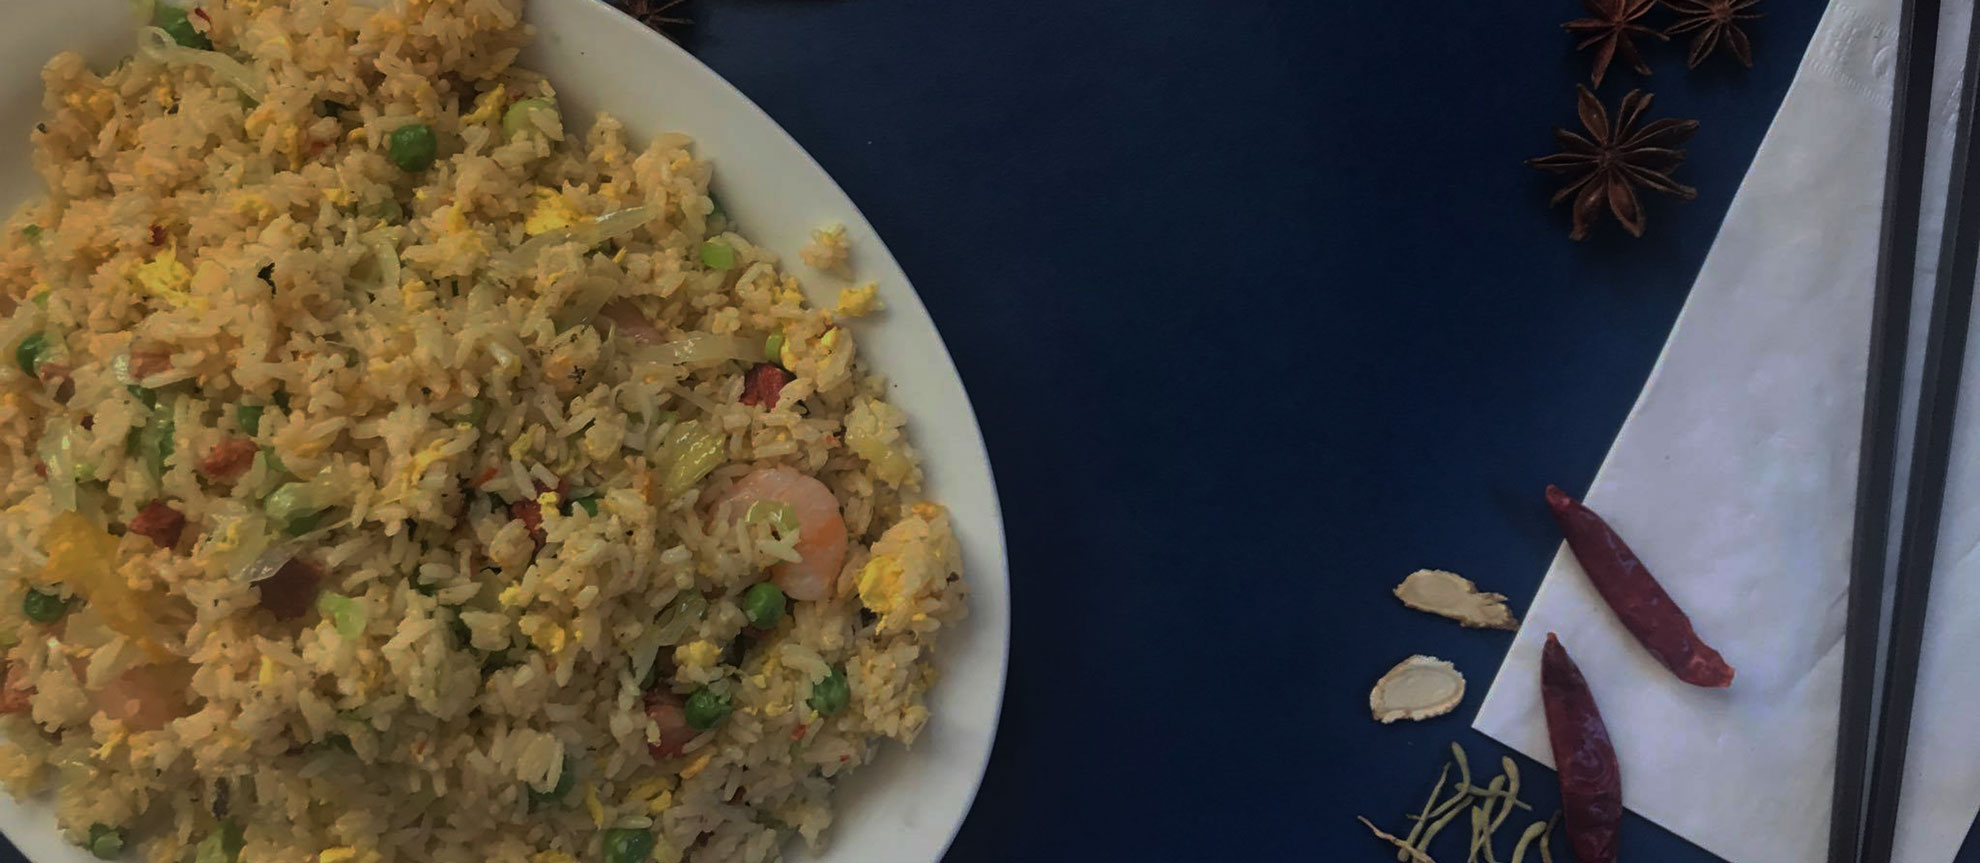 FRIED RICE & STEAMED RICE